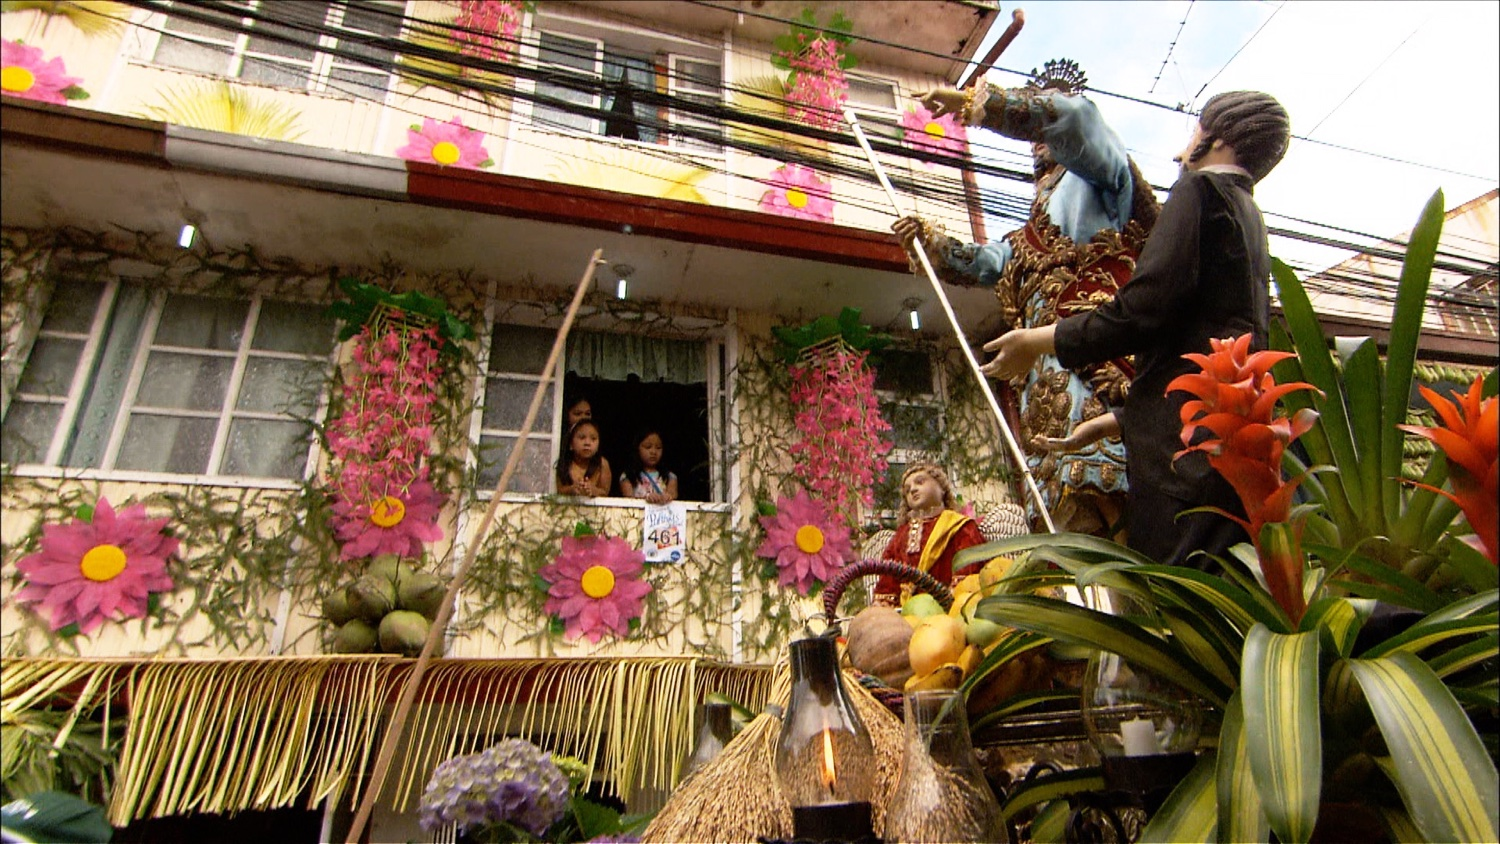 205_Philippines_parade with jesus and flowers.jpg